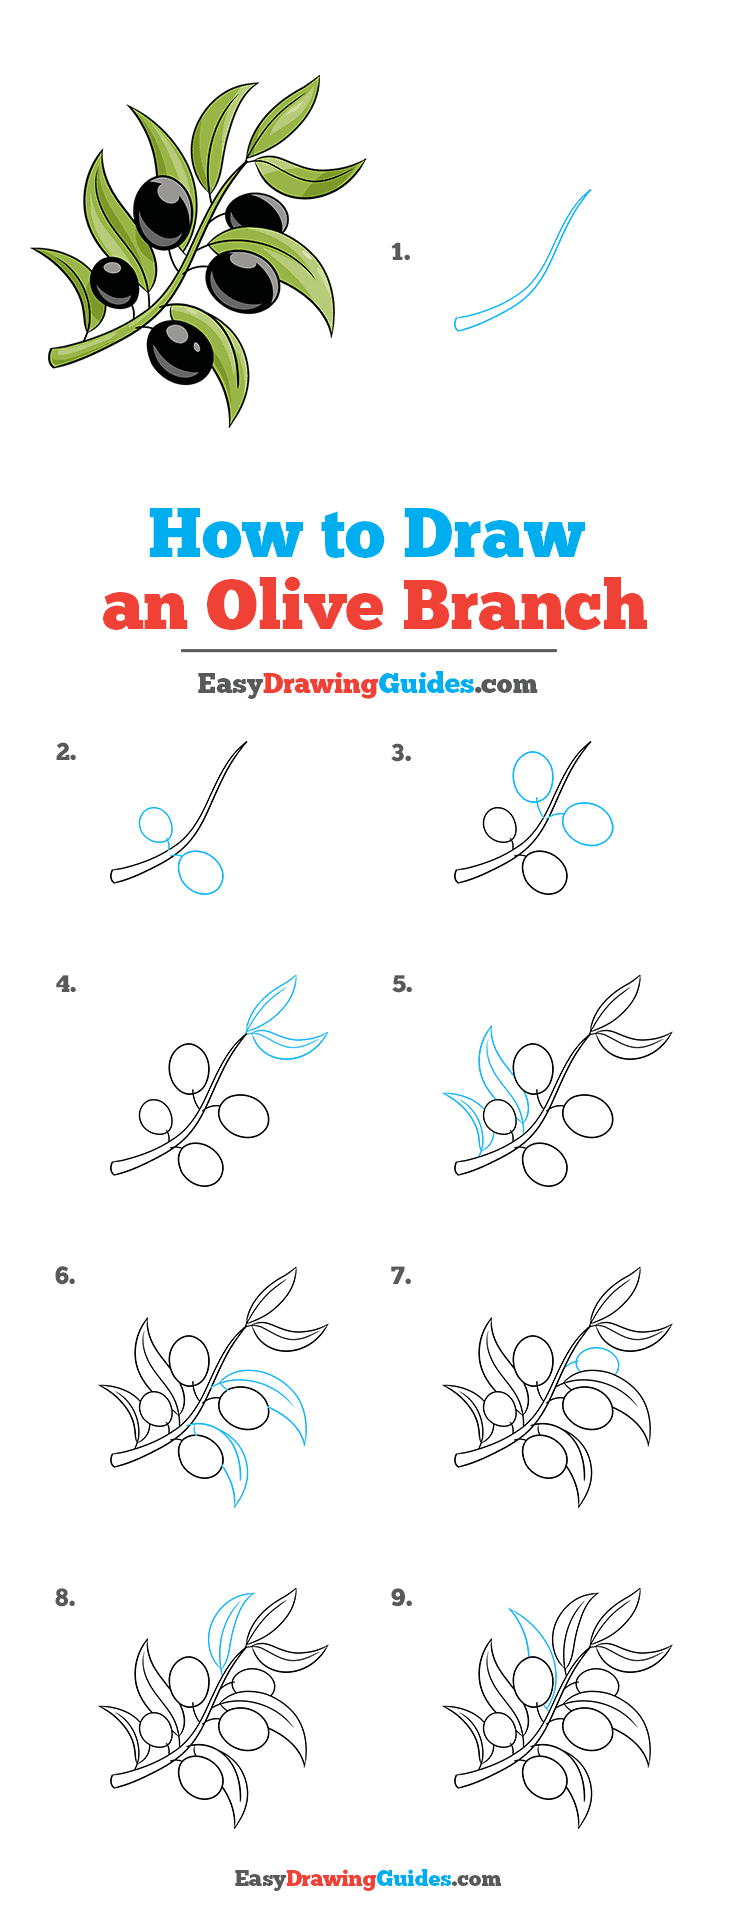 How to Draw Olive Branch